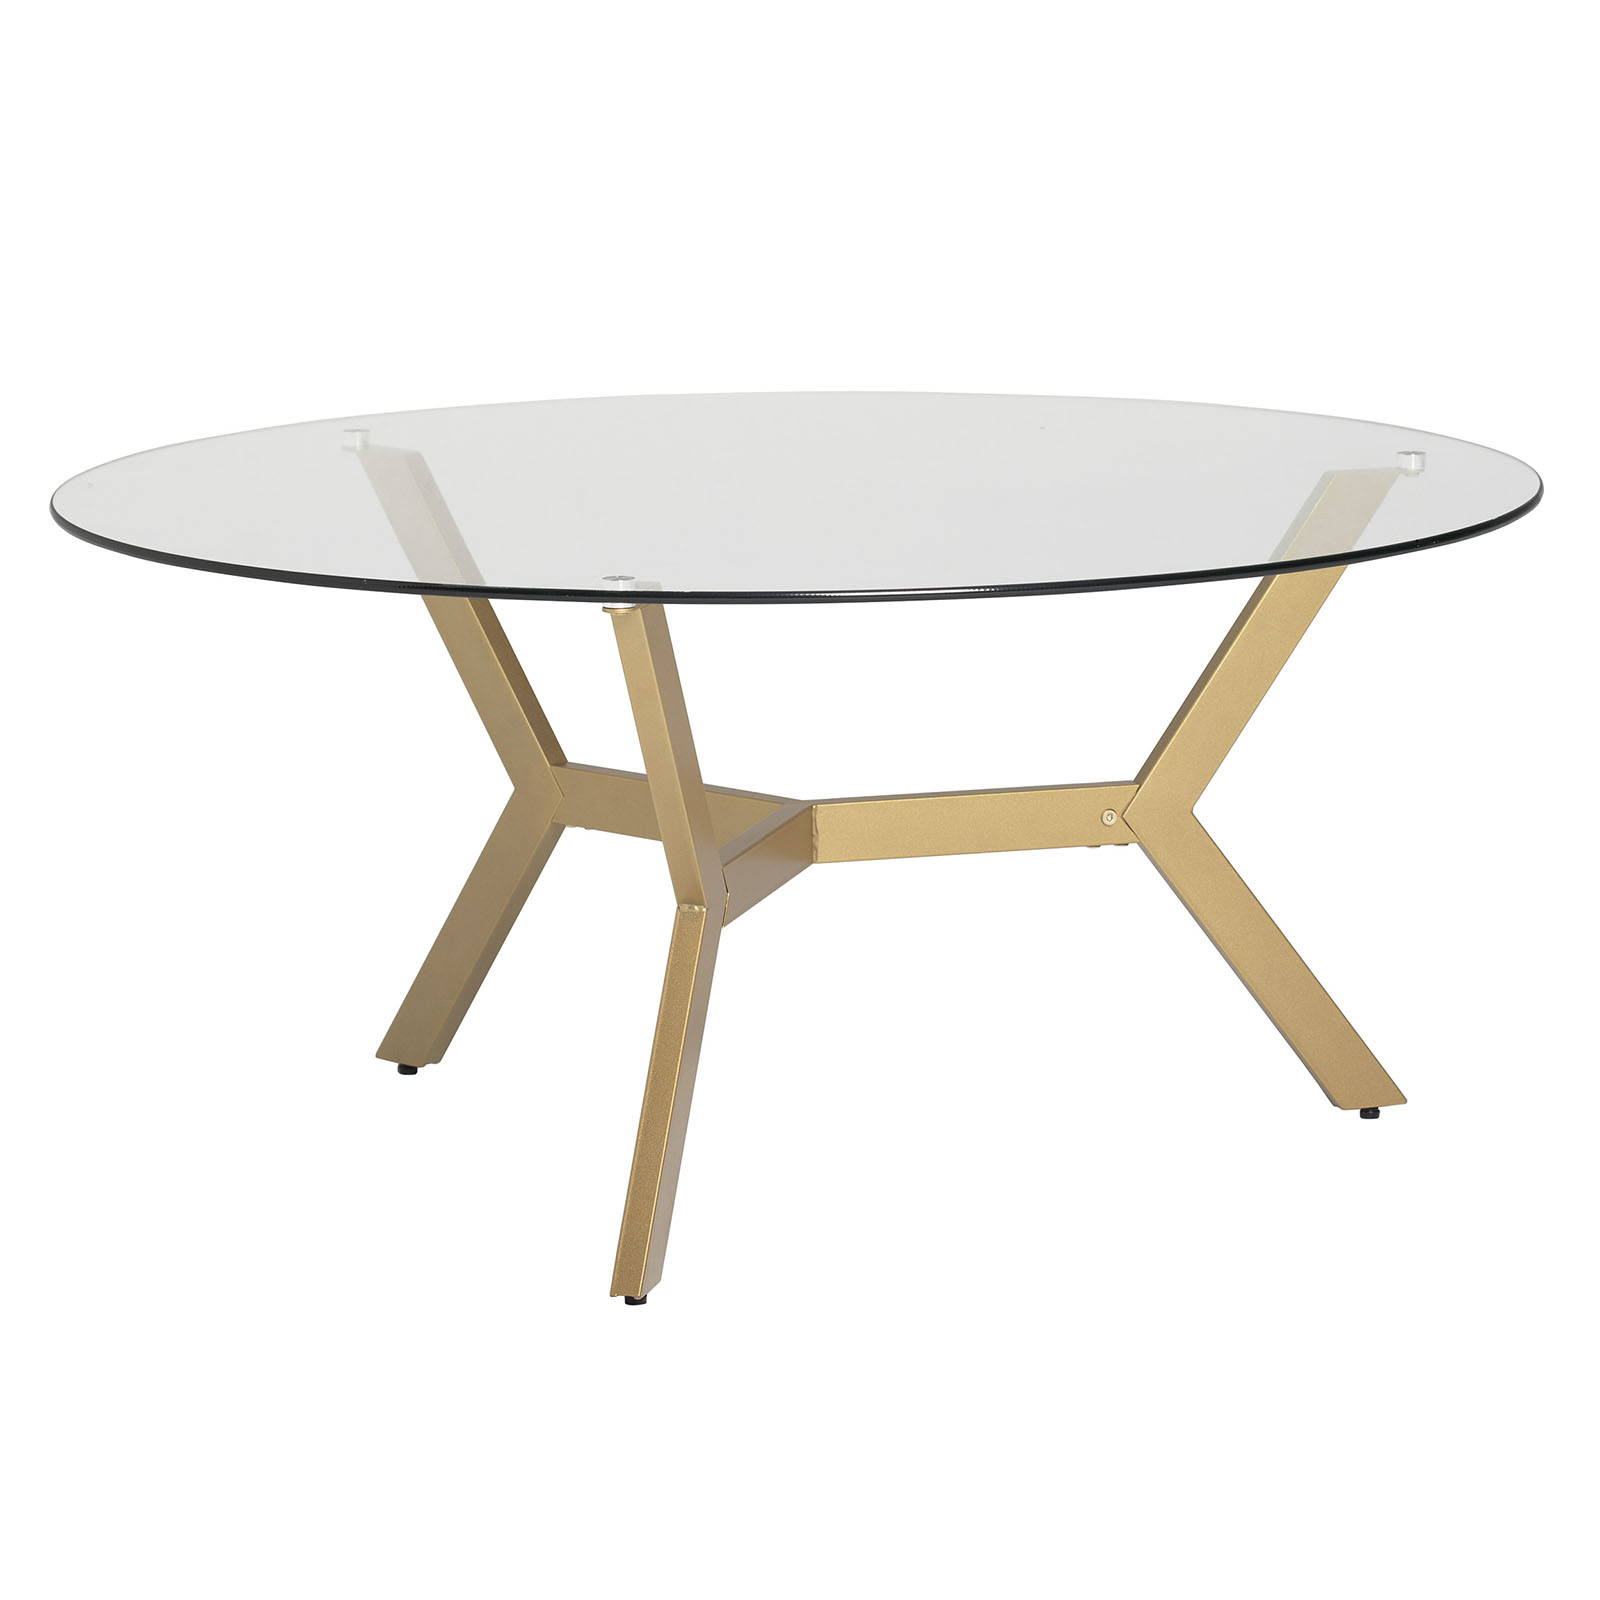 71039 ArchTech Round Coffee Table